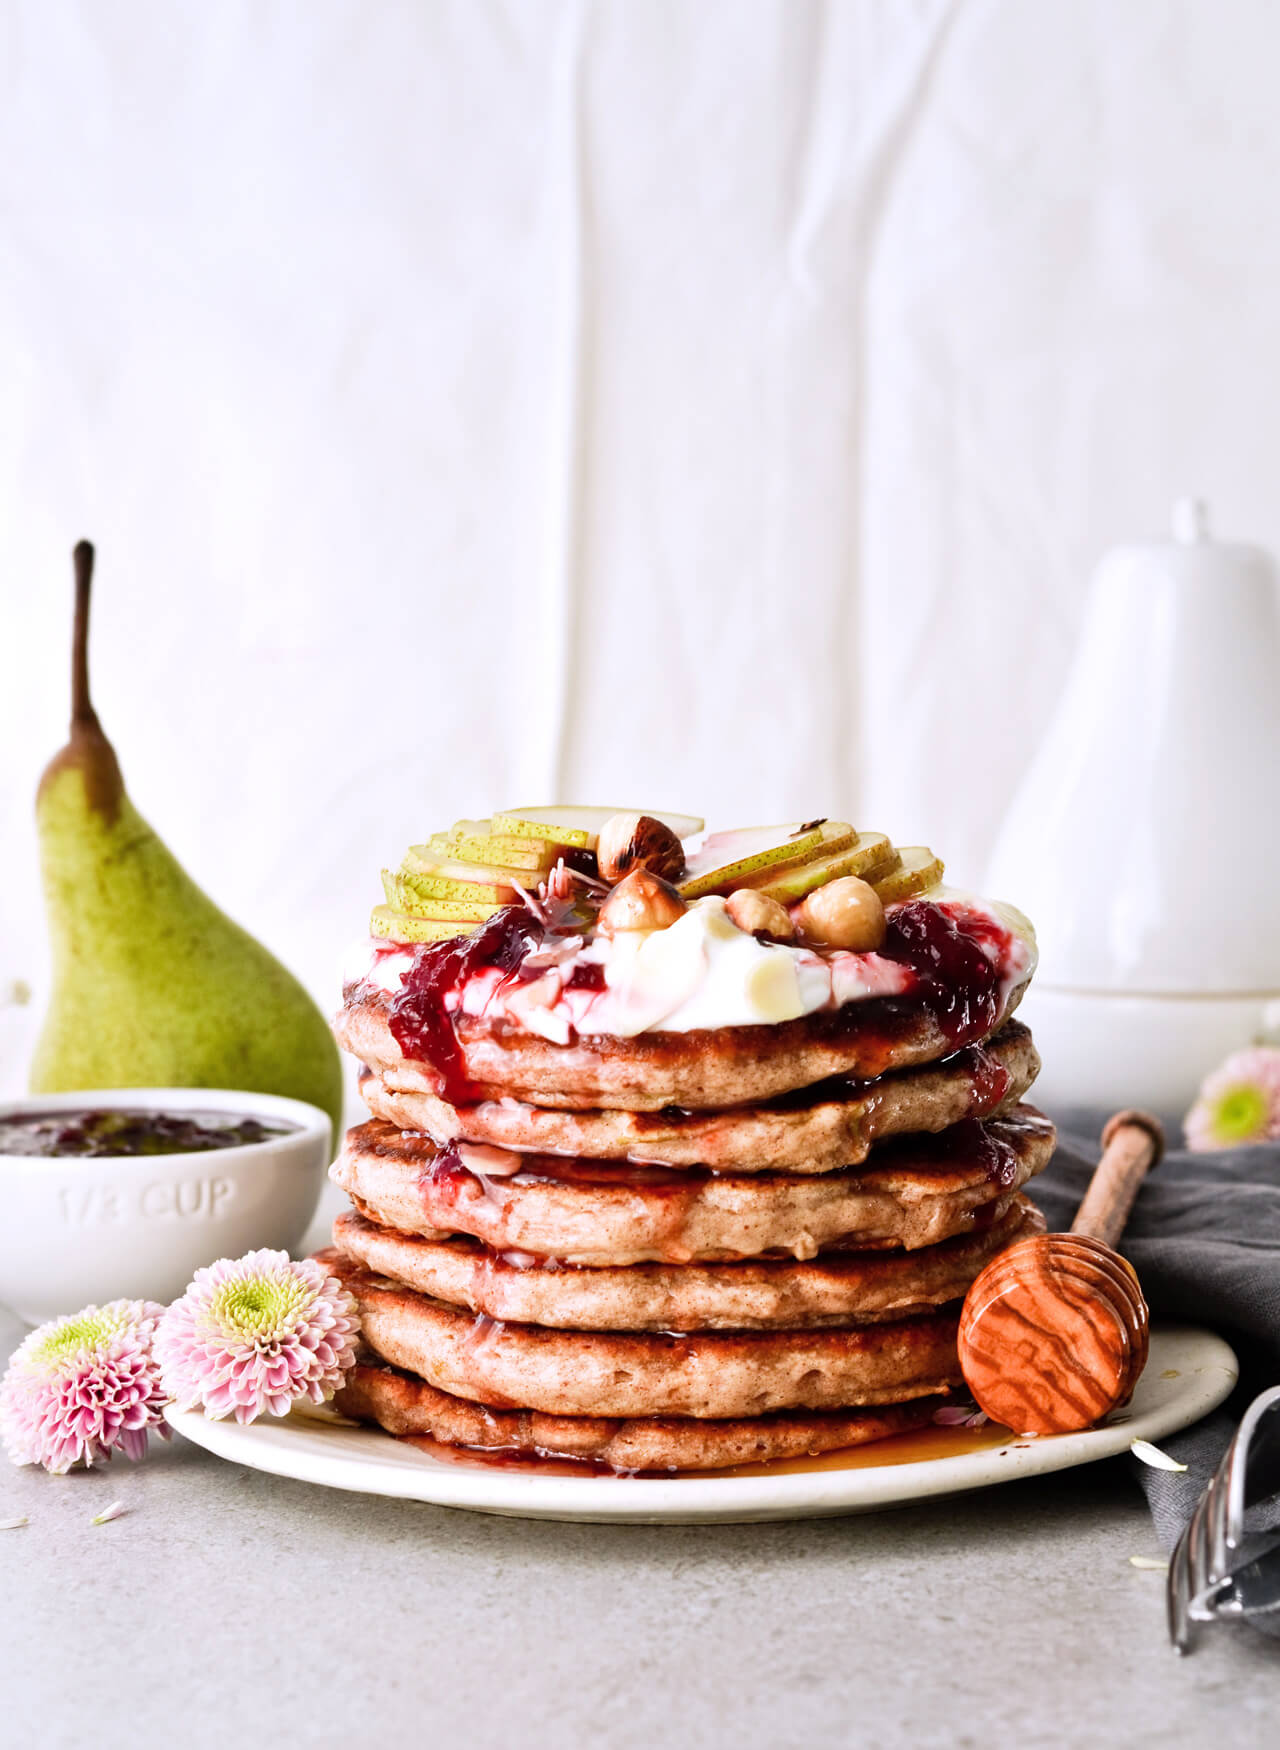 Recipe for shredded pear pancakes with yogurt and honey! Perfect Fall brunch recipe that makes fluffy, fruity pancakes everyone can enjoy.